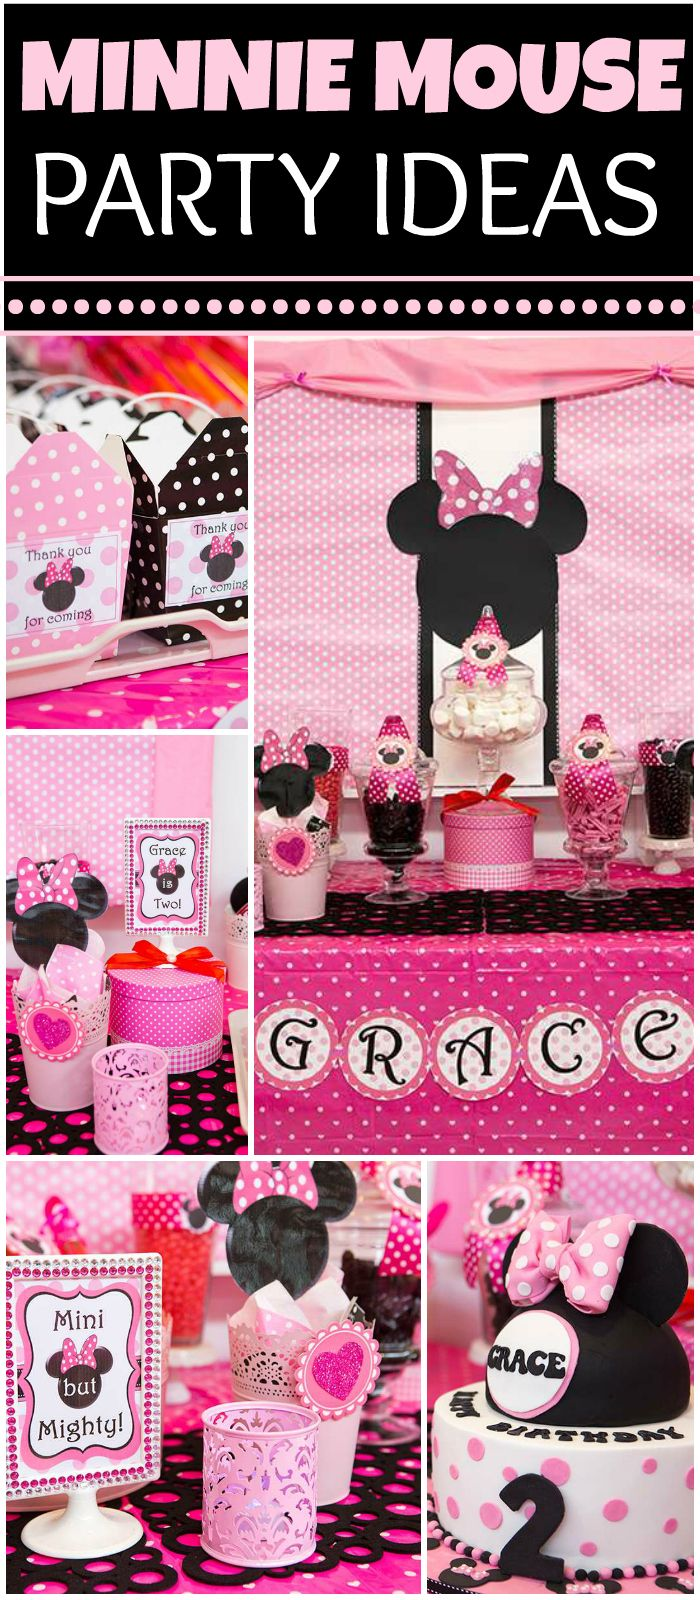 Here's a pink Minnie Mouse party with an amazing dessert table! See more party ideas at CatchMyParty.com!